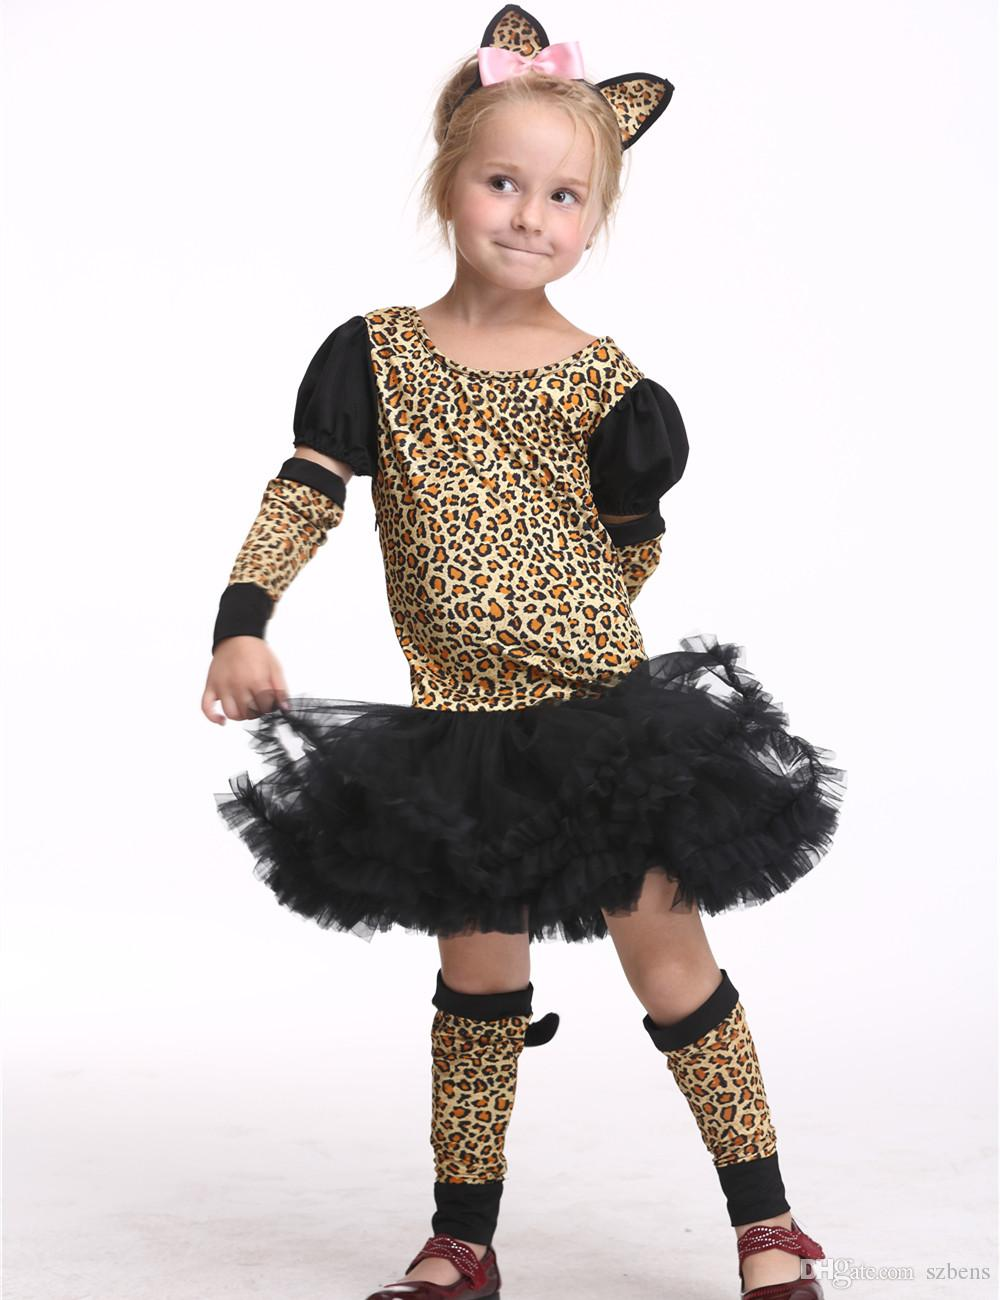 Girl Leopard Dress Costume Halloween Costume For Kids Stage u0026 Dance Wear Toddler Long Sleeve Tutu Skirt Party Cosplay Awesome Group Costumes Party Dress ...  sc 1 st  DHgate.com & Girl Leopard Dress Costume Halloween Costume For Kids Stage u0026 Dance ...